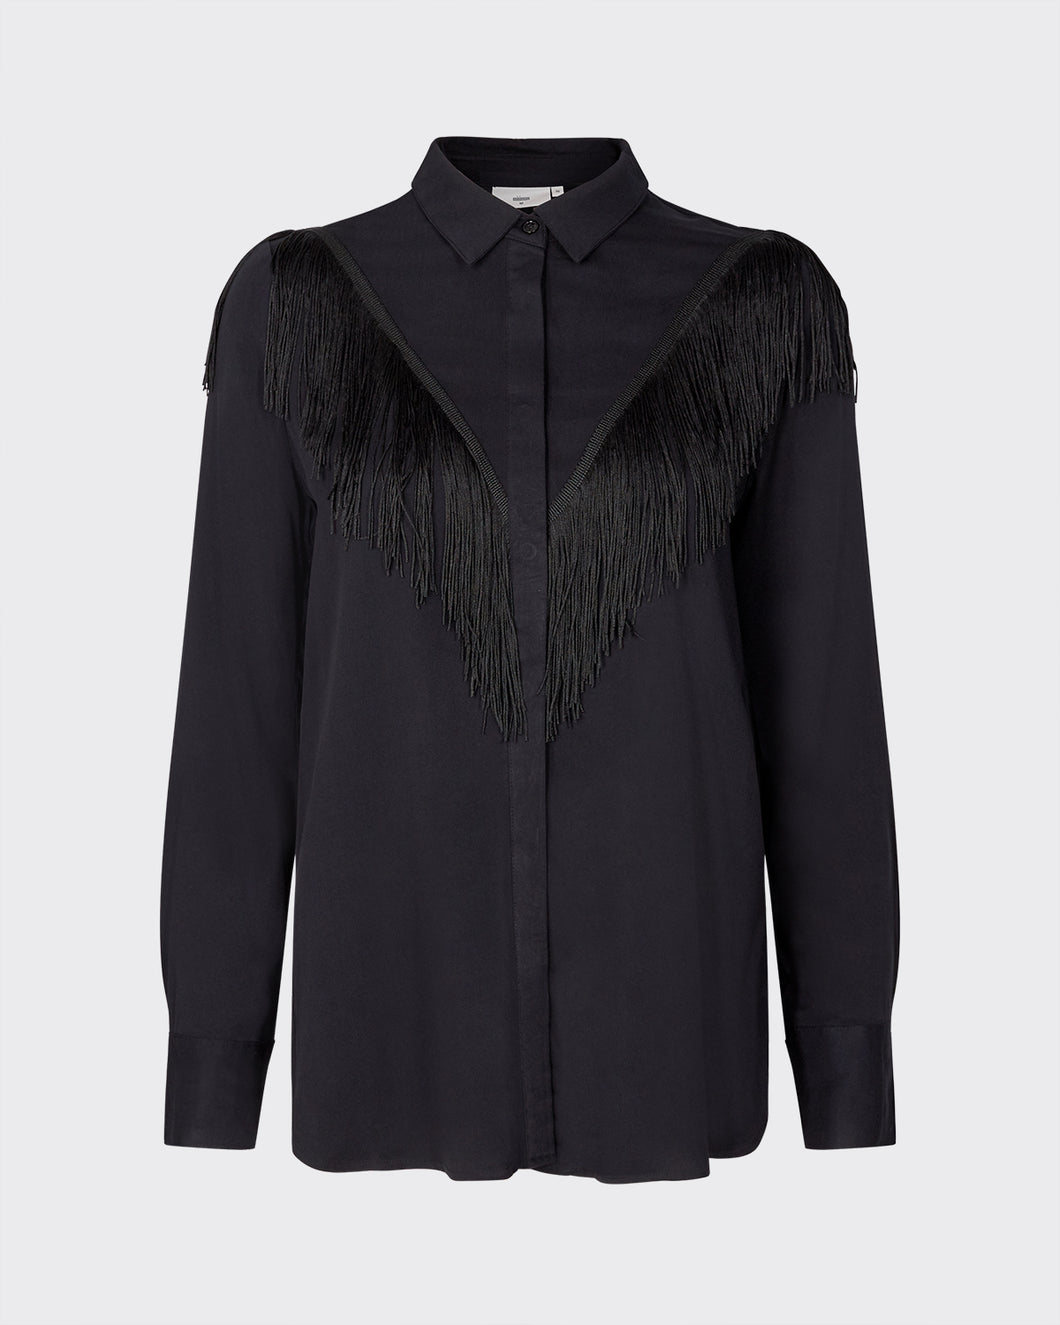 Minimum Dualine long sleeved black western style shirt blouse with fringing